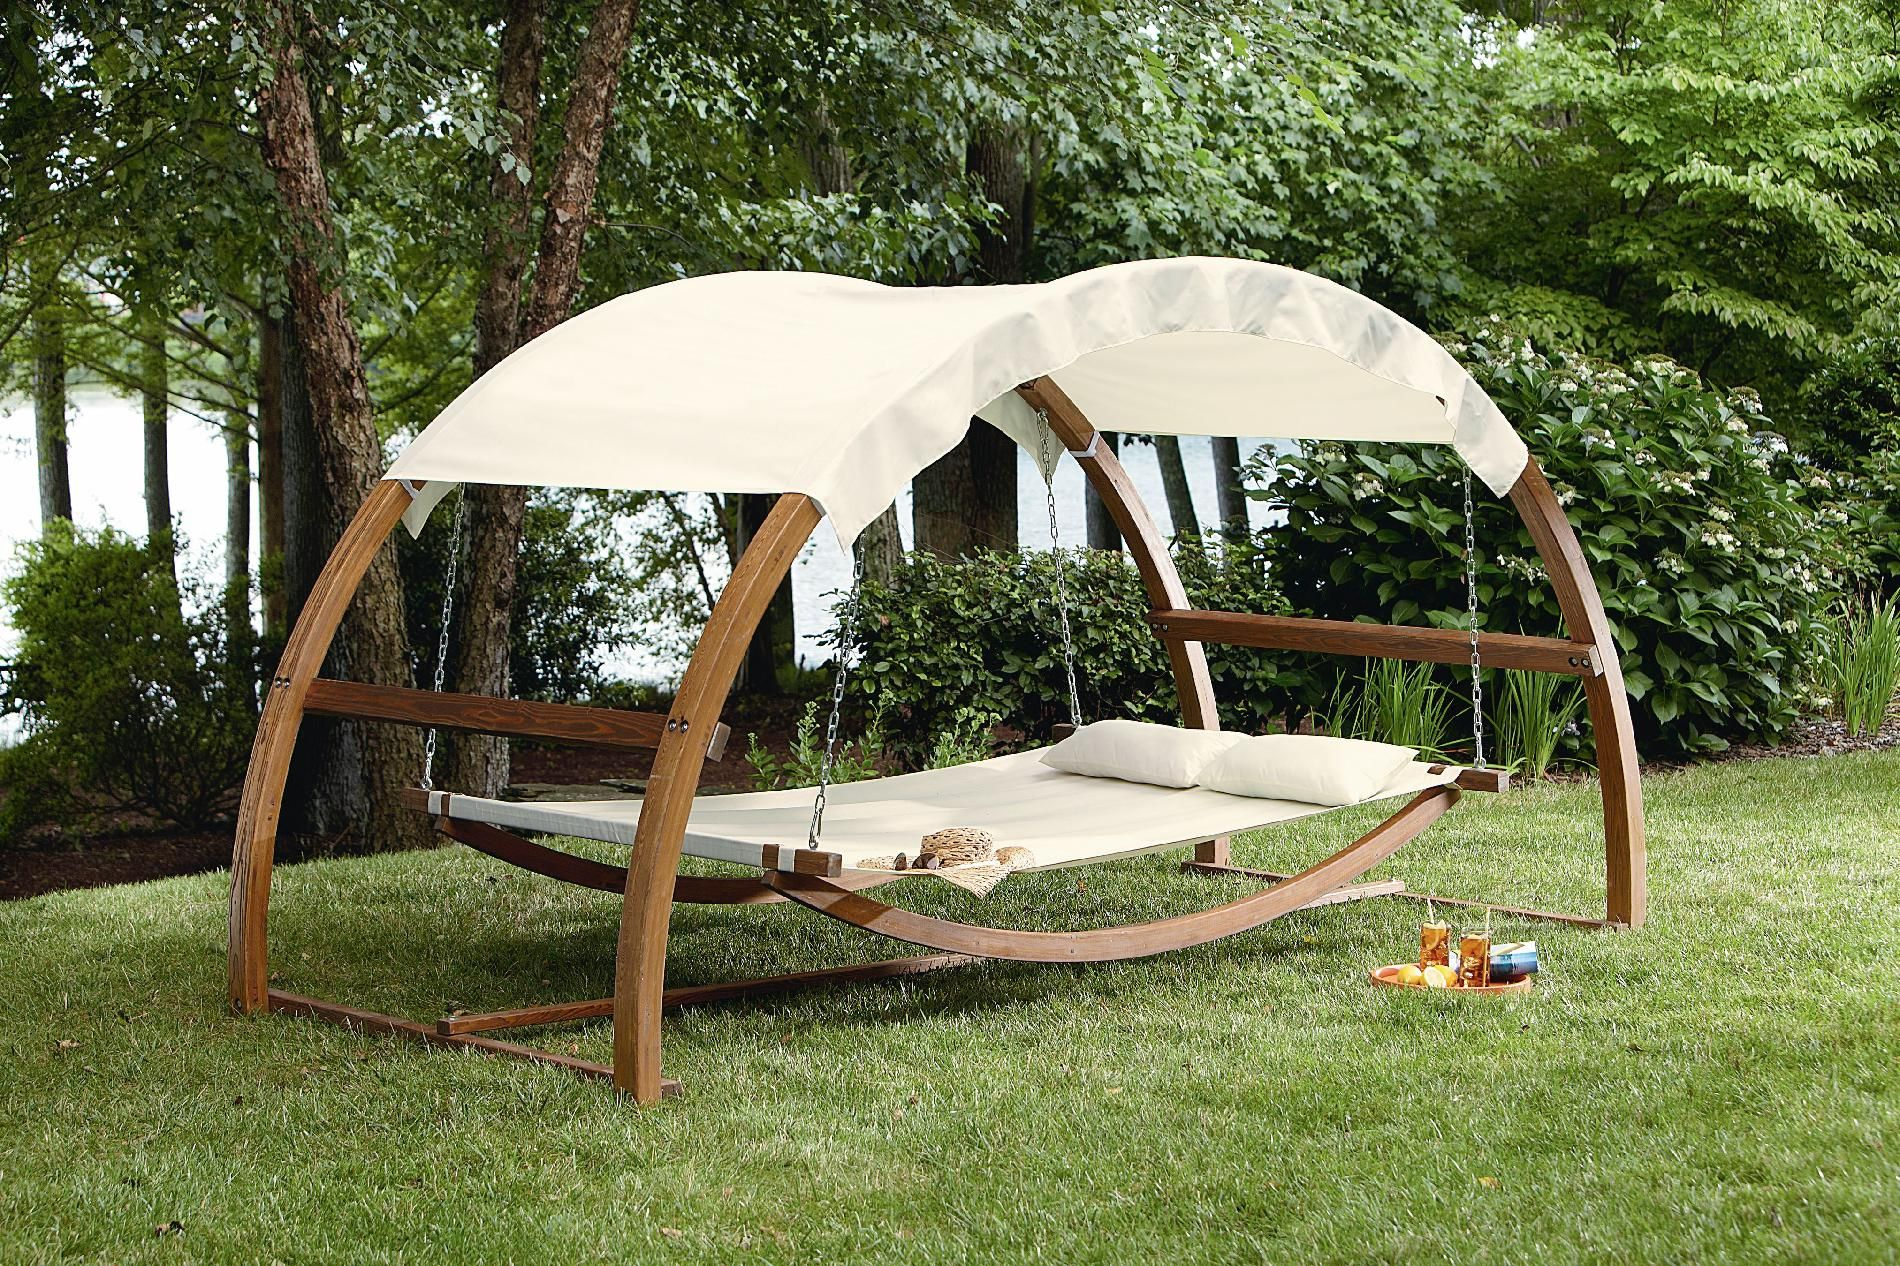 I Would Never Come In The House!! Garden Oasis Arch Swing Throughout Garden Leisure Outdoor Hammock Patio Canopy Rocking Chairs (View 13 of 25)